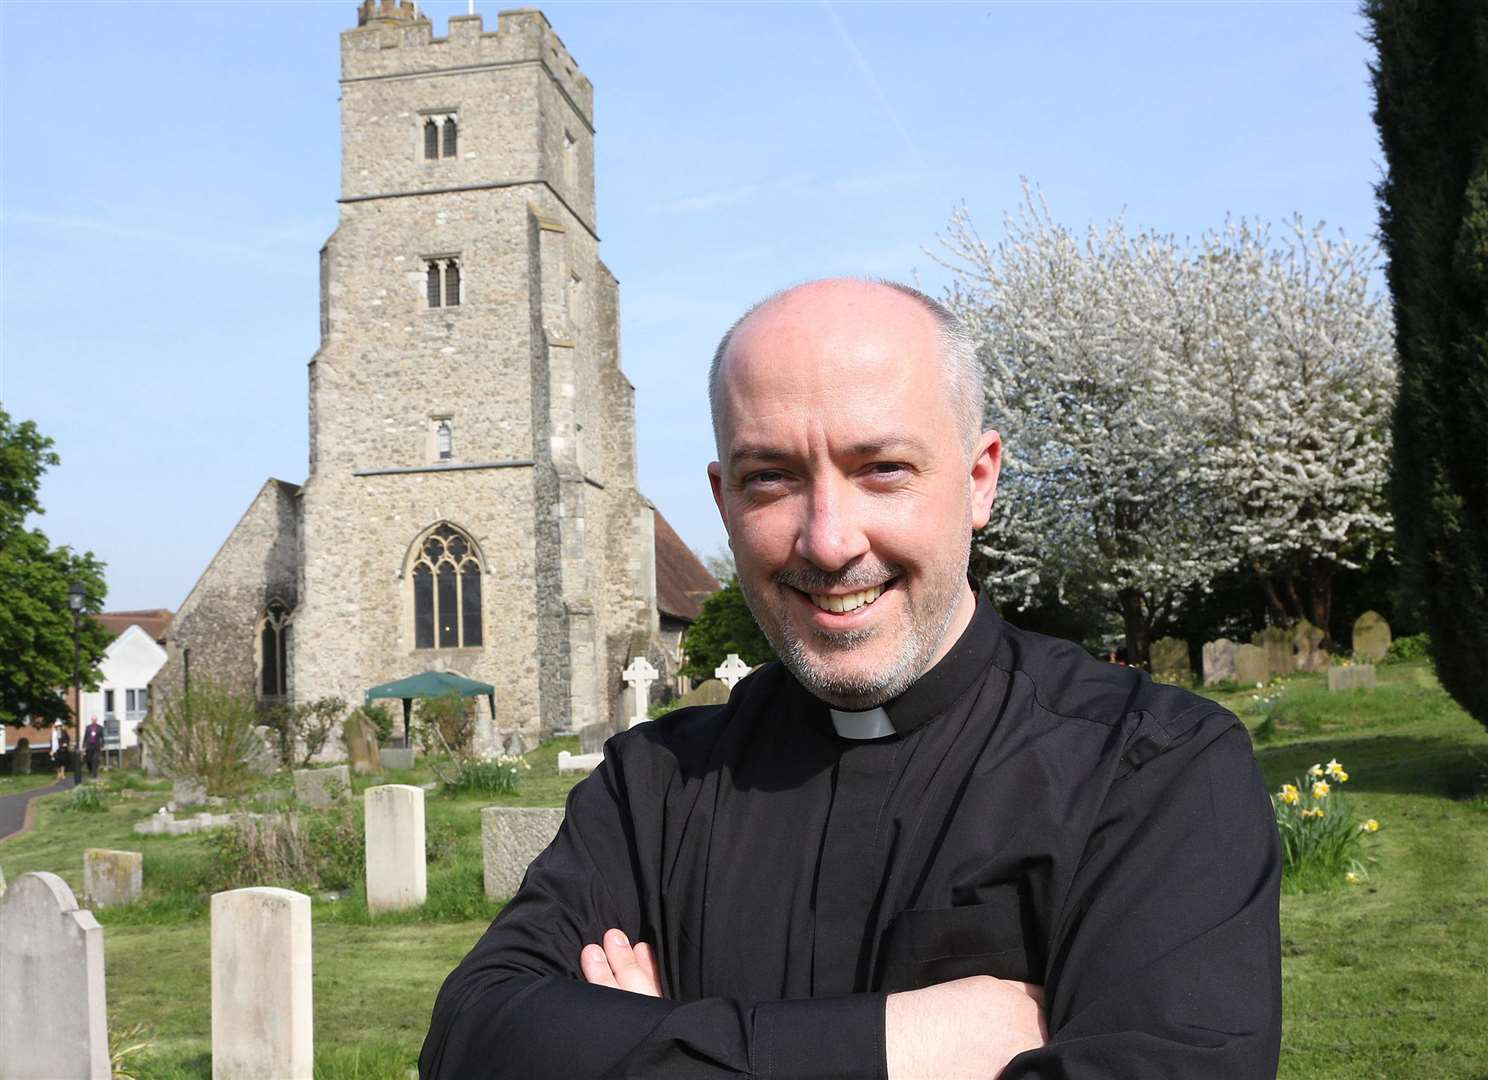 Rev Nathan Ward, the new vicar at St Margaret's Church in Rainham